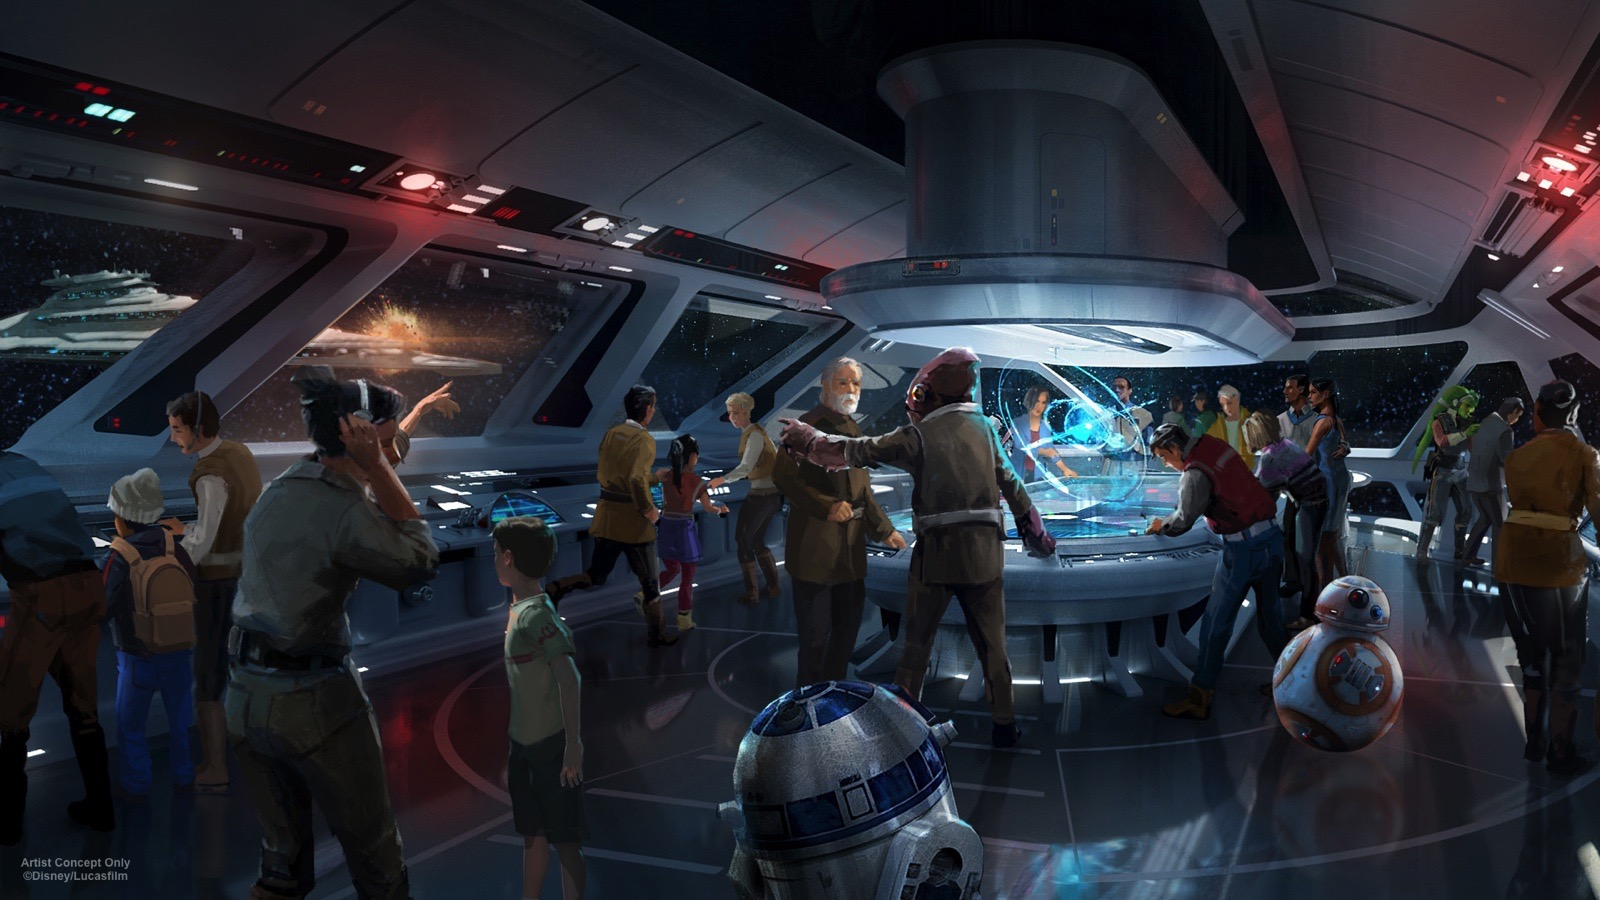 Amusement parks based on Star Wars, will open its doors in 2019